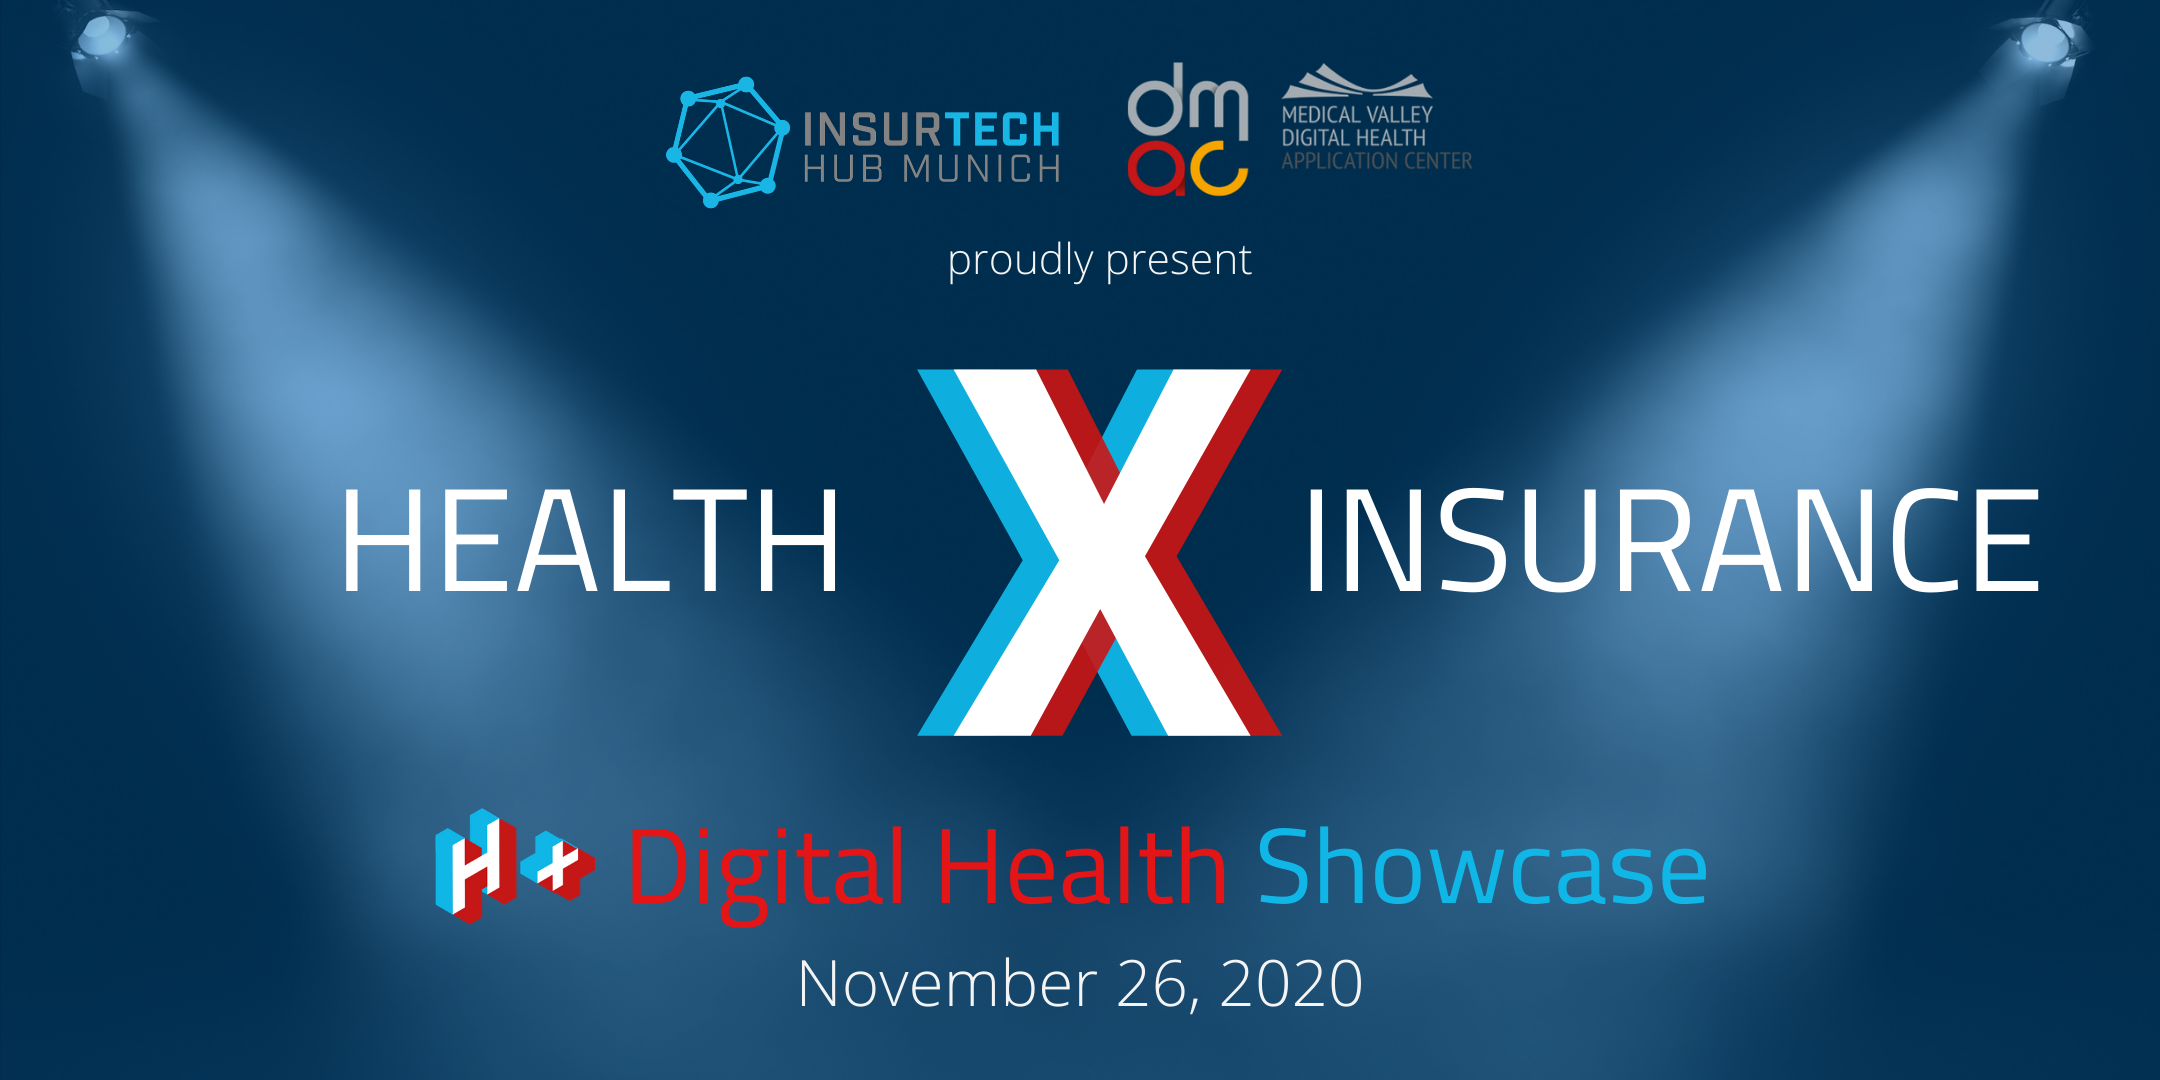 Health X Insurance: H+ Digital Health Showcase